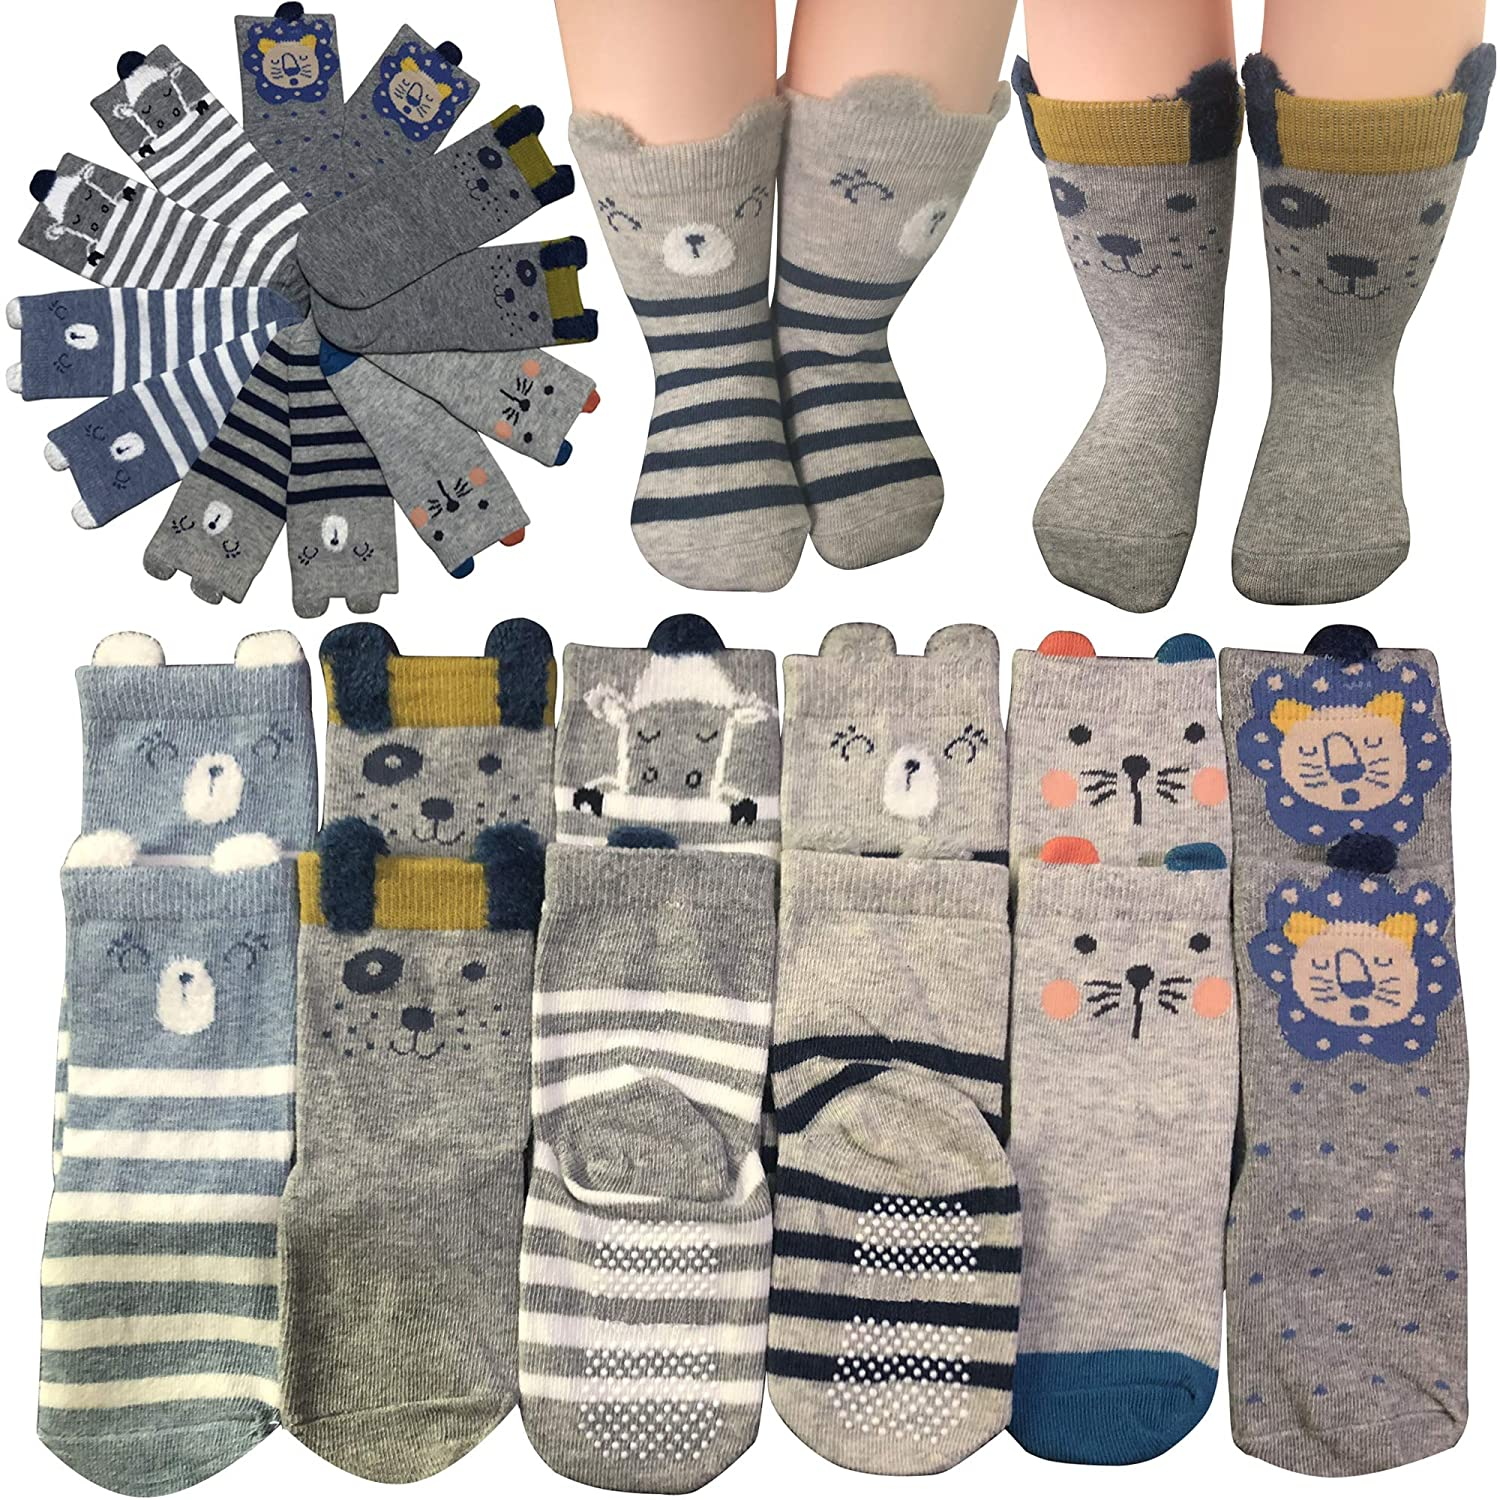 6 Pairs Cartoon Toddler Socks Boys Girls Anti-Slip Ankle Socks Baby Walkers Non-Skip Cute Animal Cotton Cozy Socks with Grip for 12-36 Months Kakalu